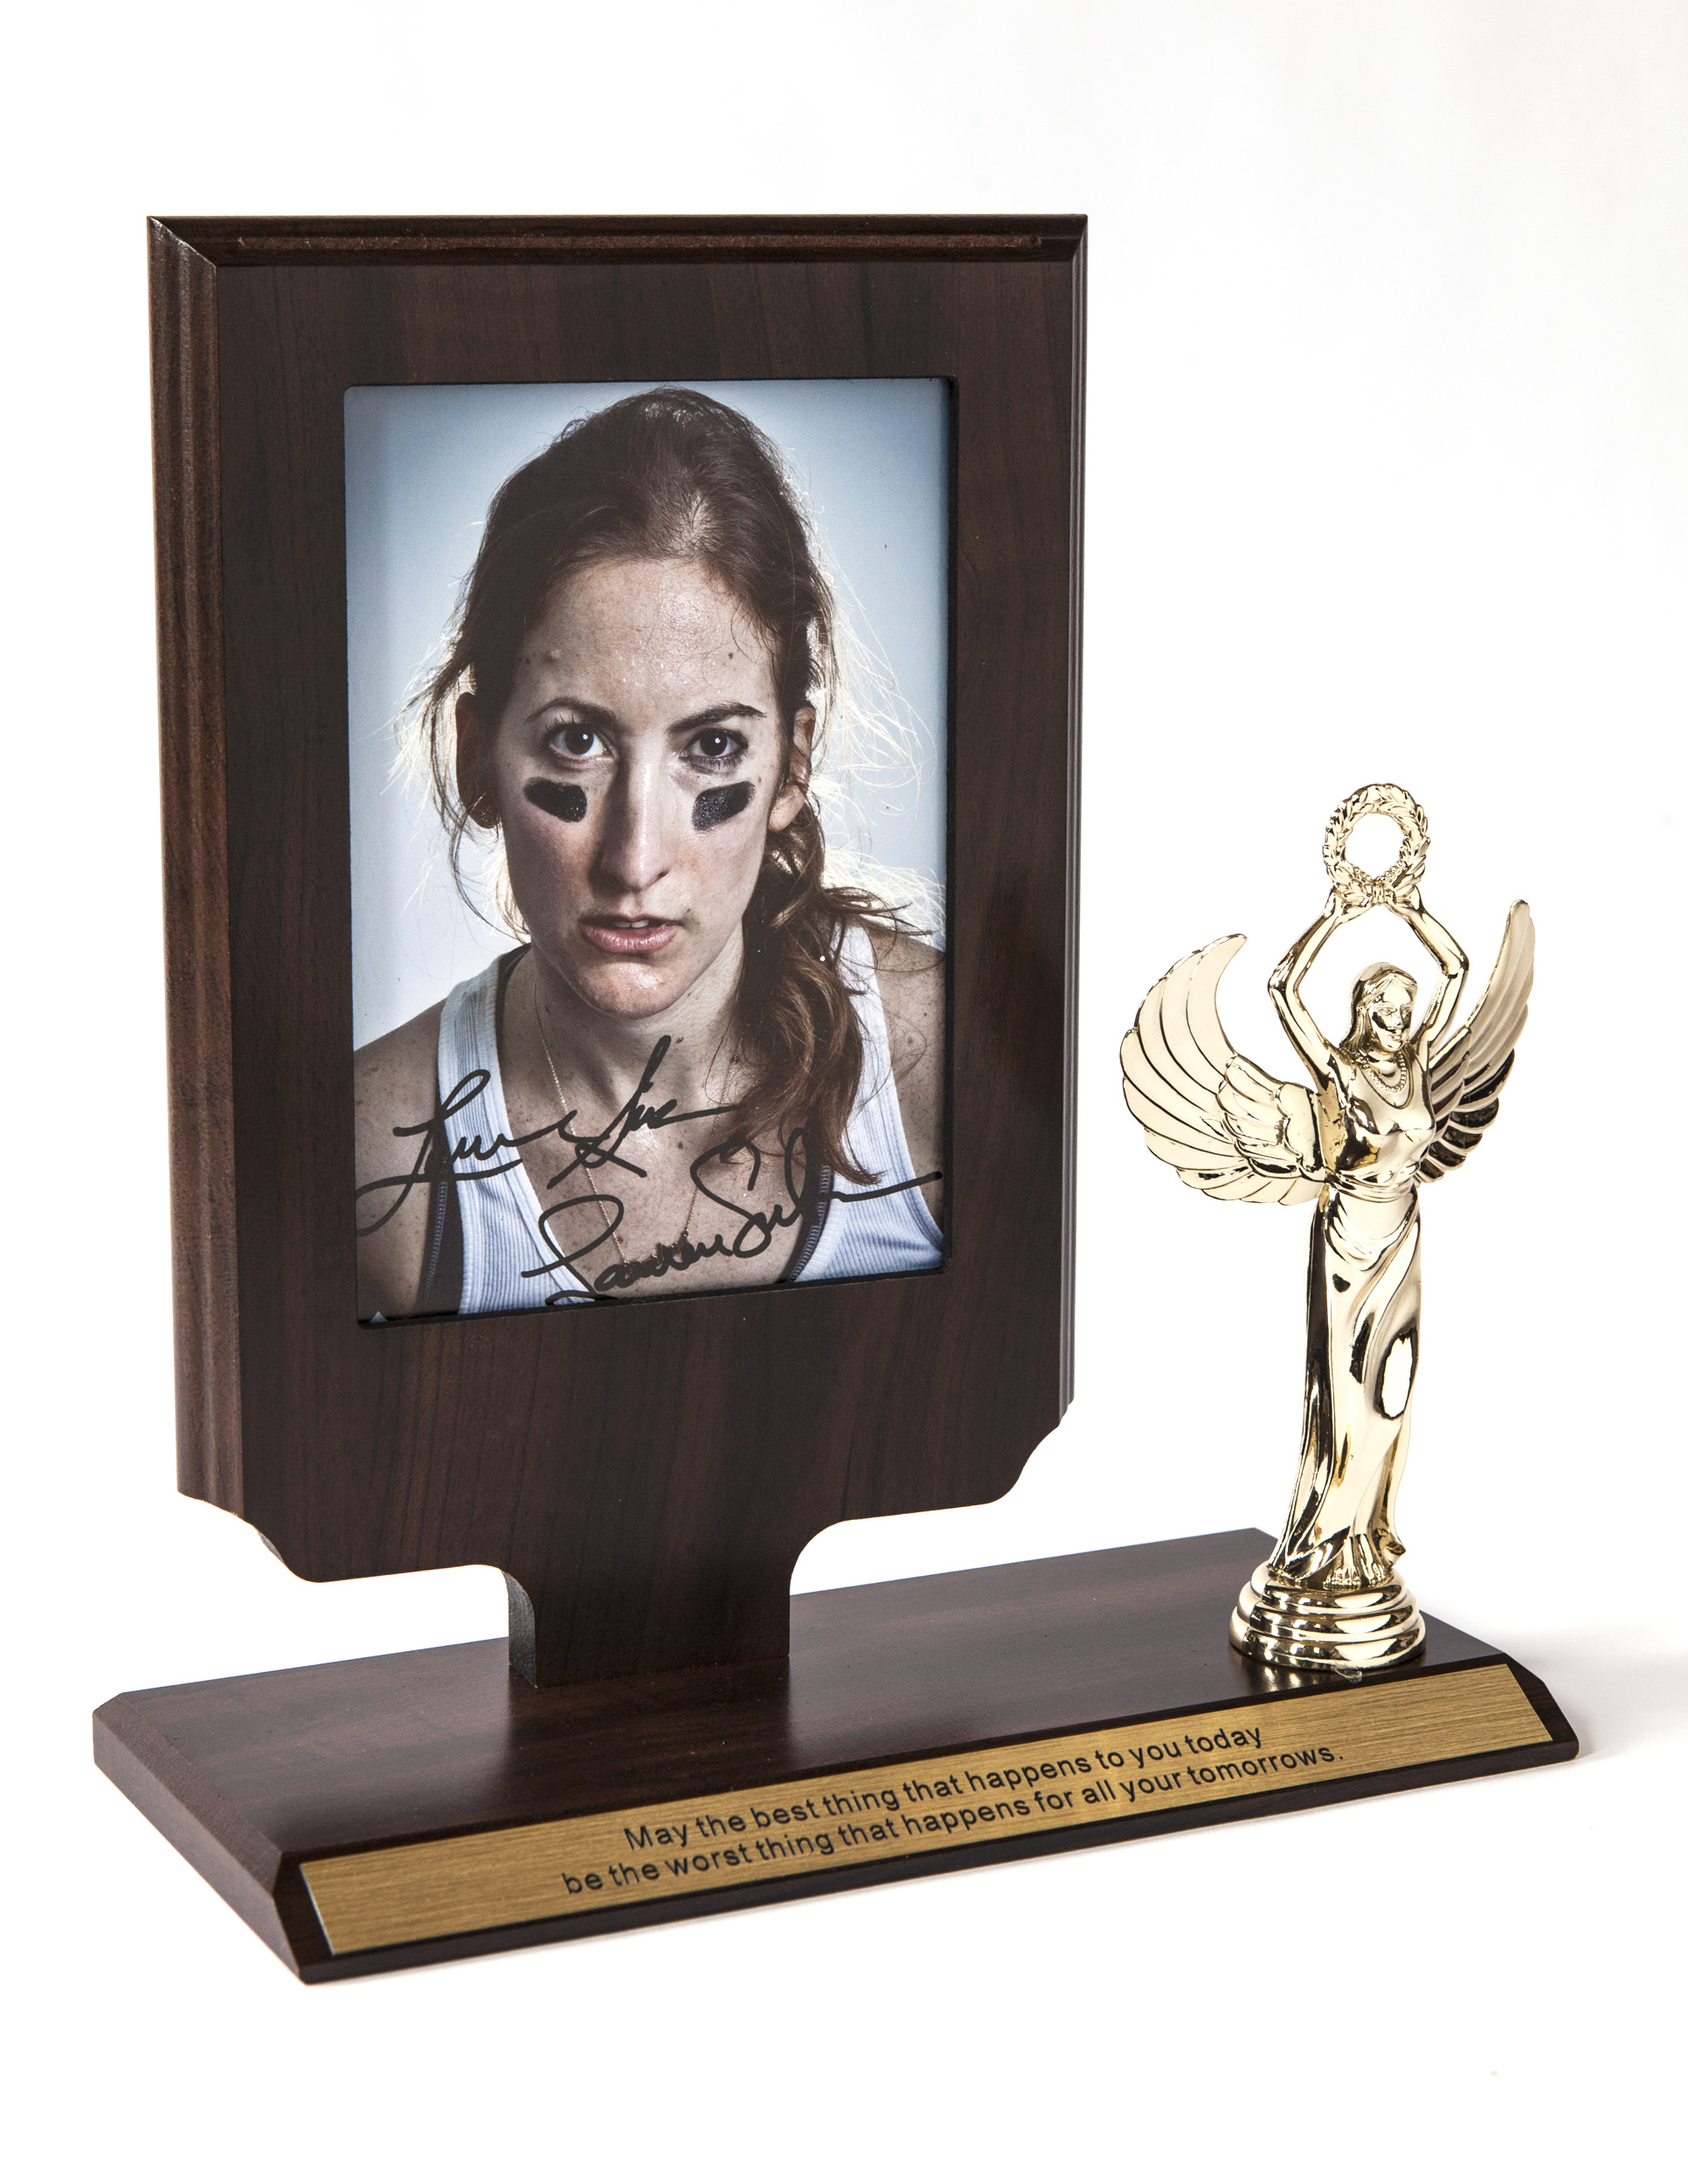 After being mistakenly contacted by multiple news agencies, including Fox News, NBC, and Al Jazeera for being the first female to try out for the NFL, artist Lauren Silberman tracked down and contacted NFL hopeful, Lauren Silberman and invited her to be photographed. The resulting piece, Face Off, is a composite of their two faces framed in a trophy, confirming the continued confusion between their identities based solely on their name.  Face Off  was first exhibited at the Spring/Break Art Fair in 2016 as part of the show  Doppelnamer , which she also co-curated.